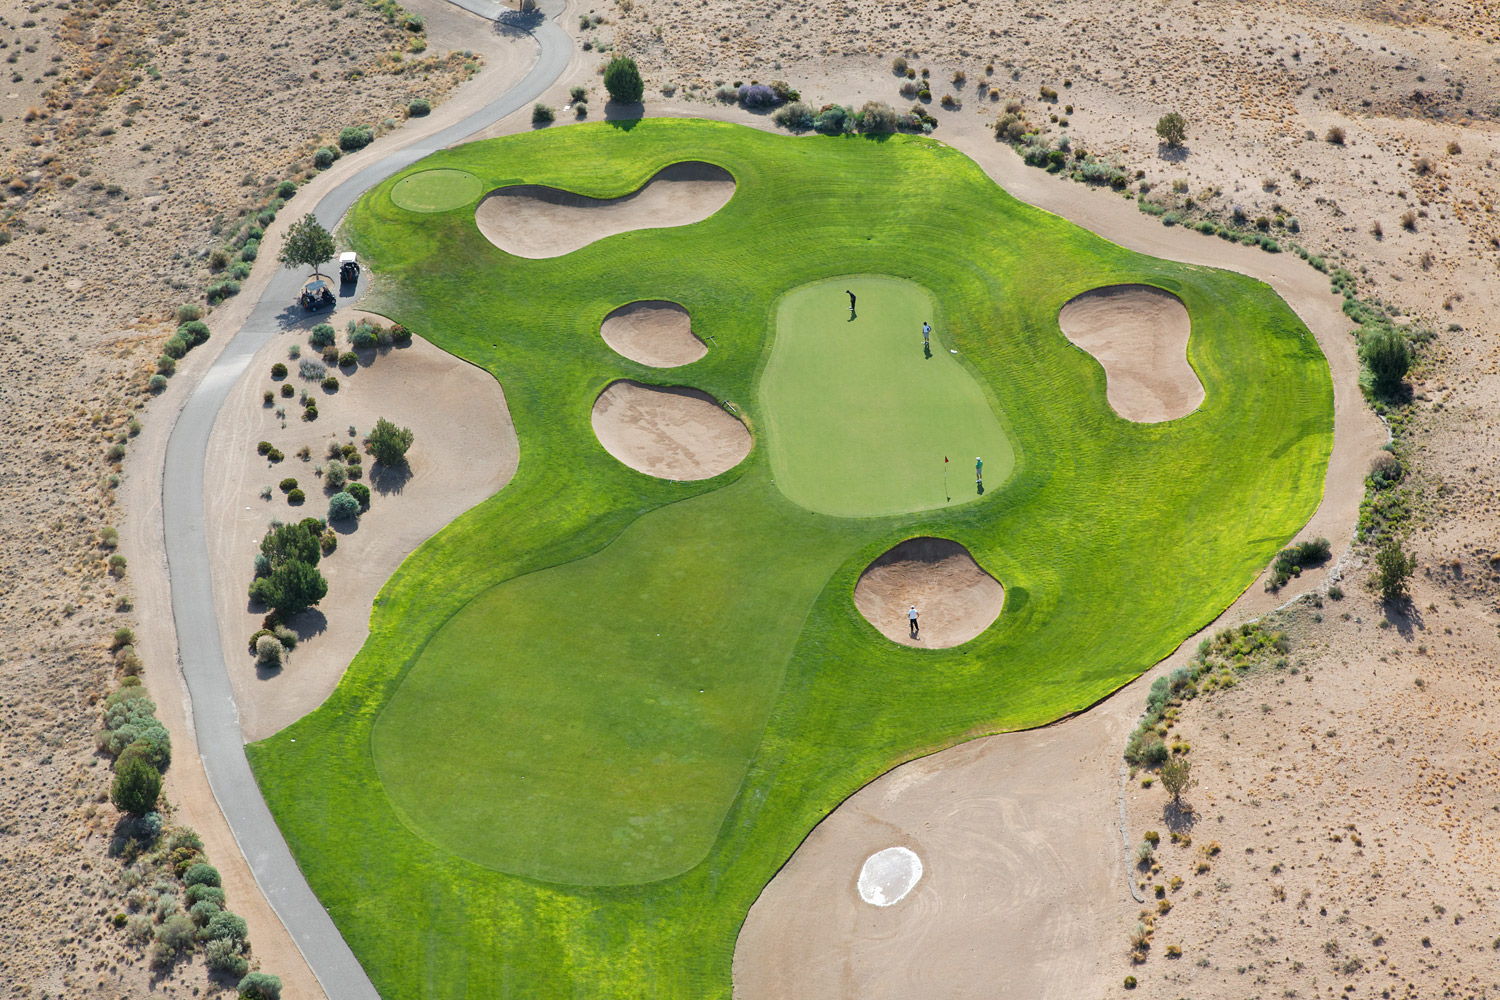 Golf courses in the New Mexico desert require large amounts of water to remain green. As drought becomes more common, tensions increase over water usage.